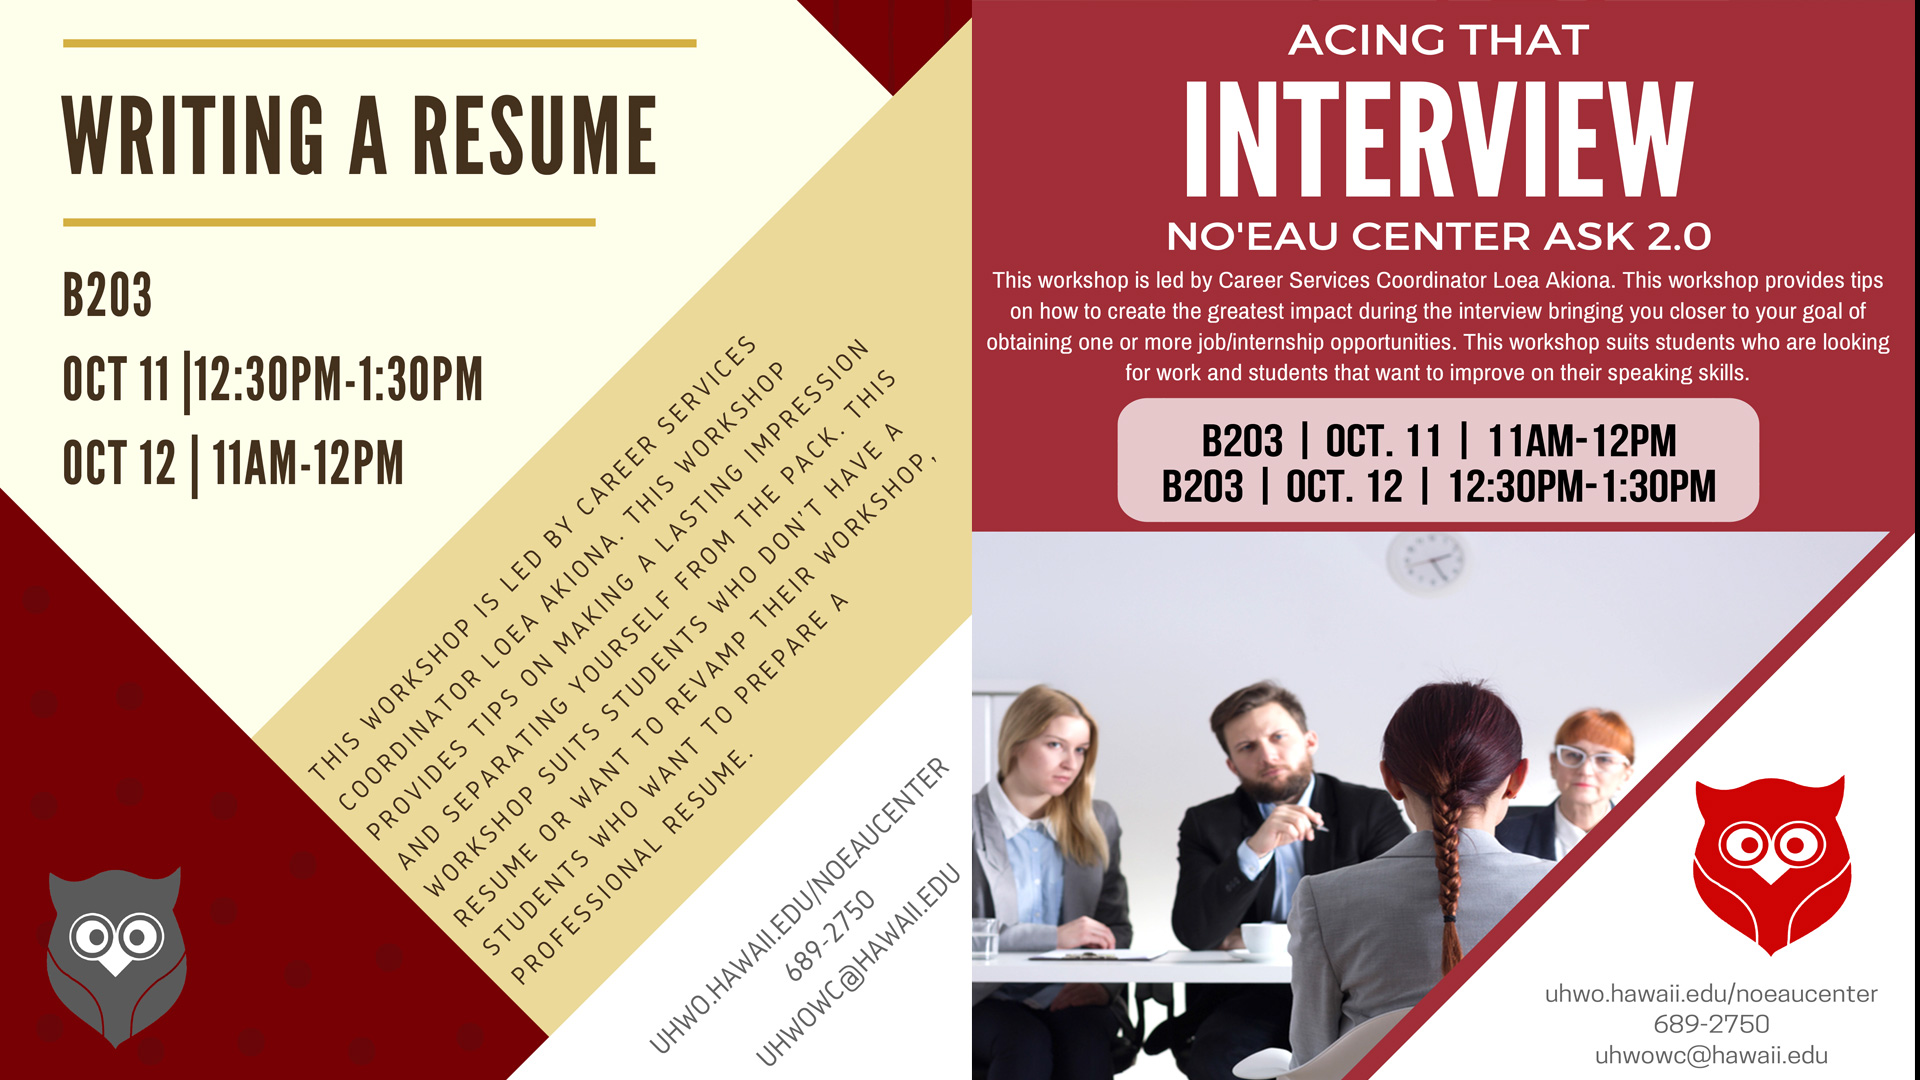 resume Resume Workshops e kamakani hou tag noeau center centers ask 2 0 workshops that and a